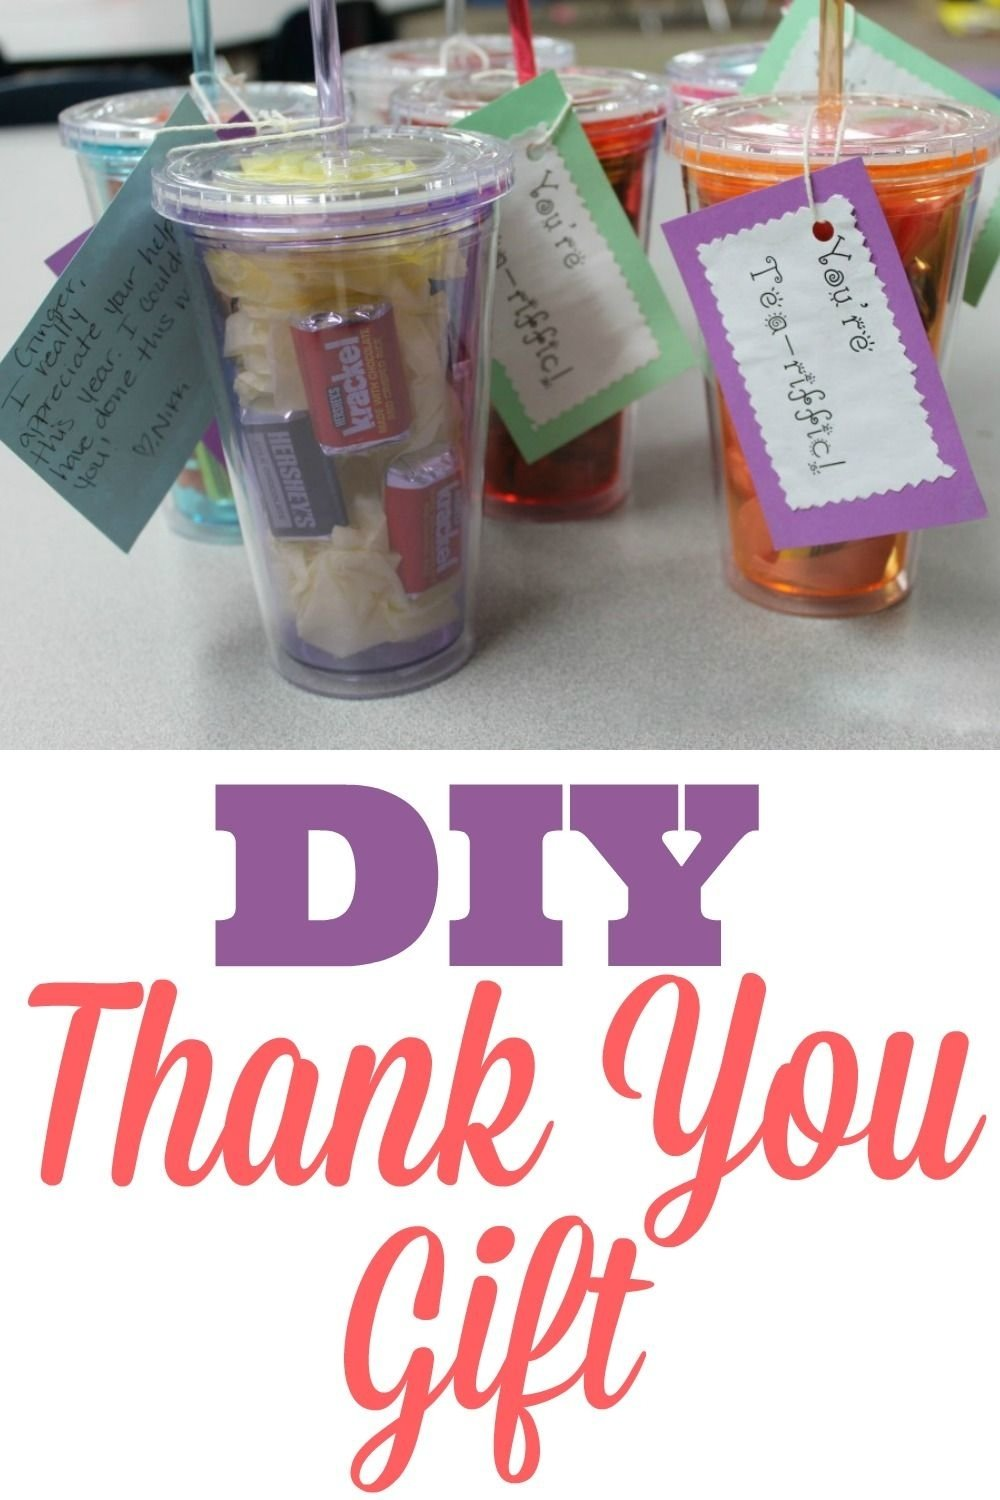 10 Awesome Diy Thank You Gift Ideas diy thank you gift for classroom volunteers classroom volunteer 1